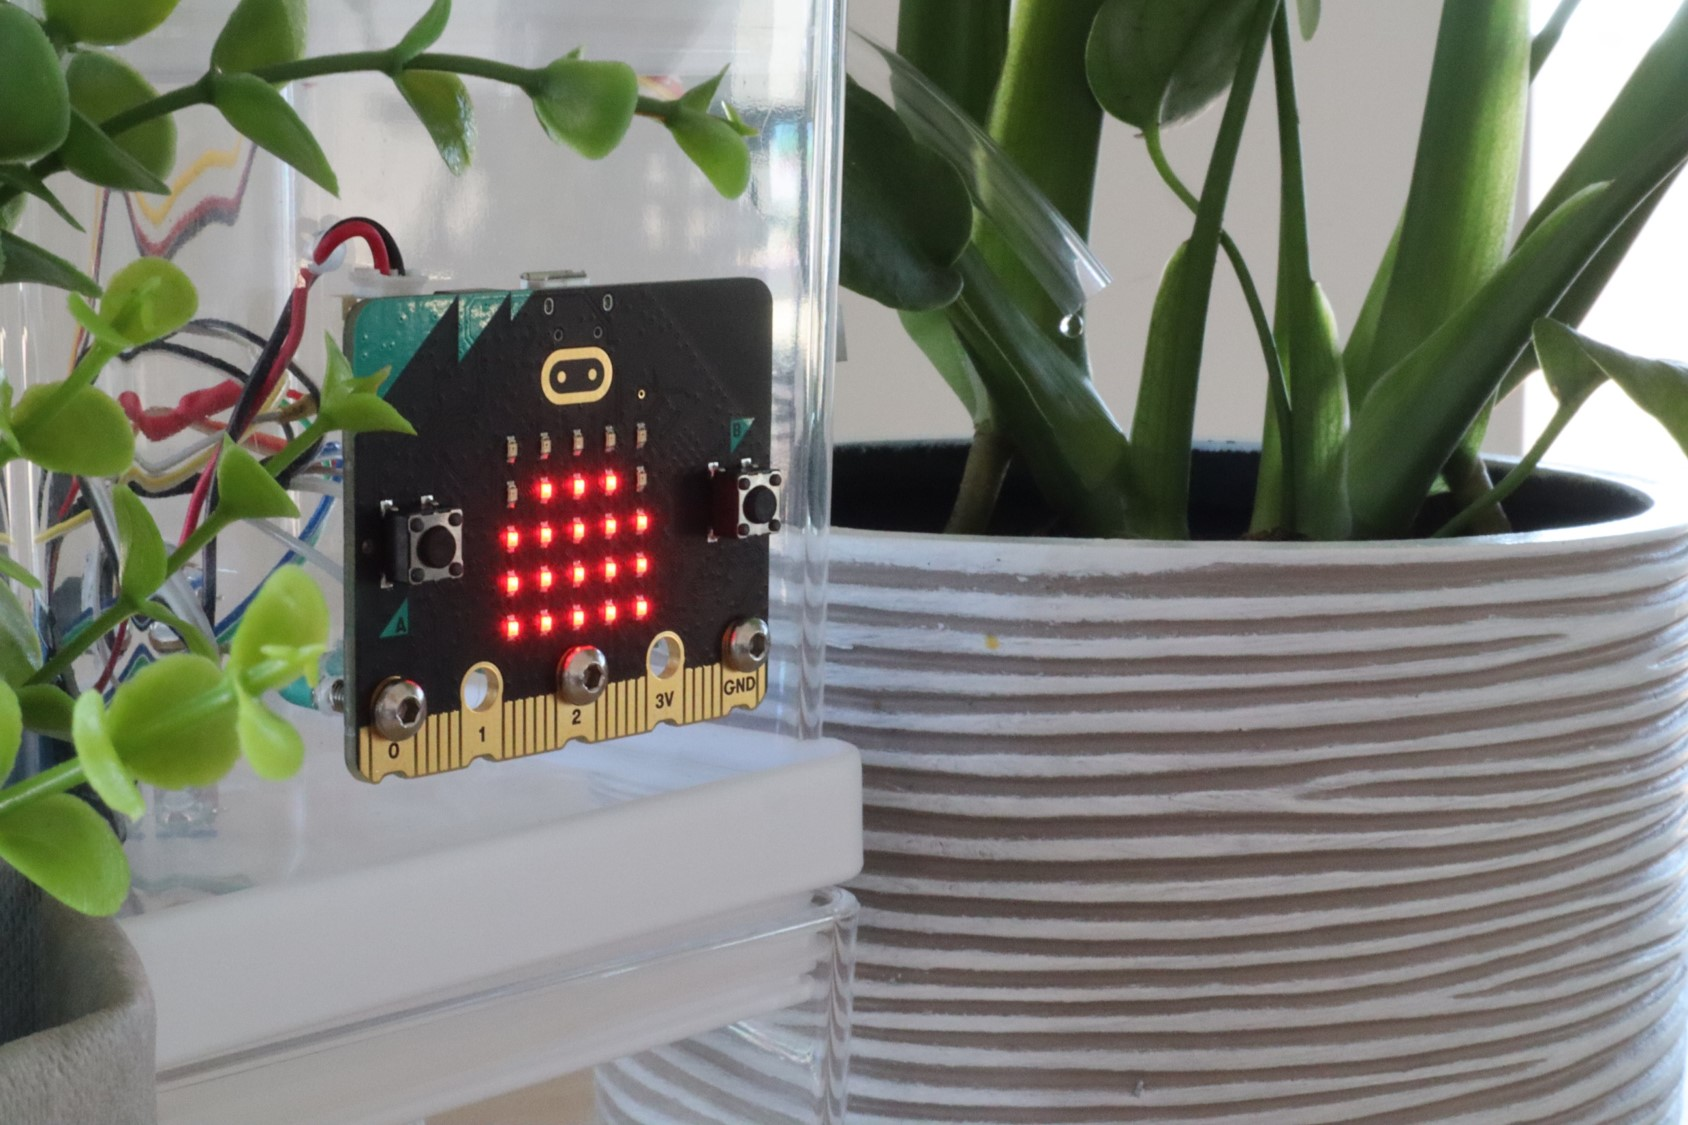 Microbit Looking After Plant